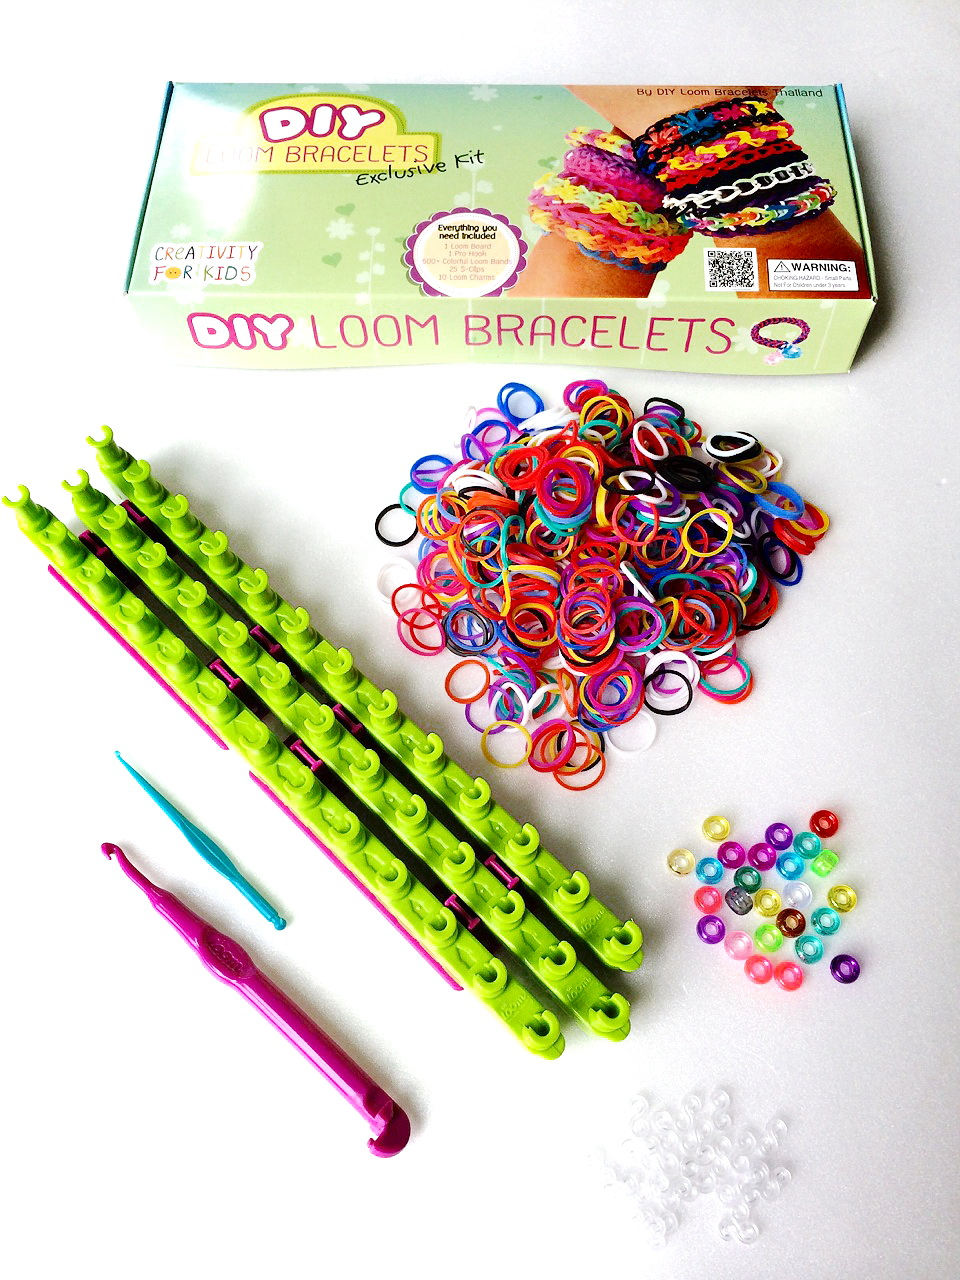 ชุดถักซิลิโคน Loom Band ชุด New DIY Loom Bracelets Exclusive Kit (Ex Set)